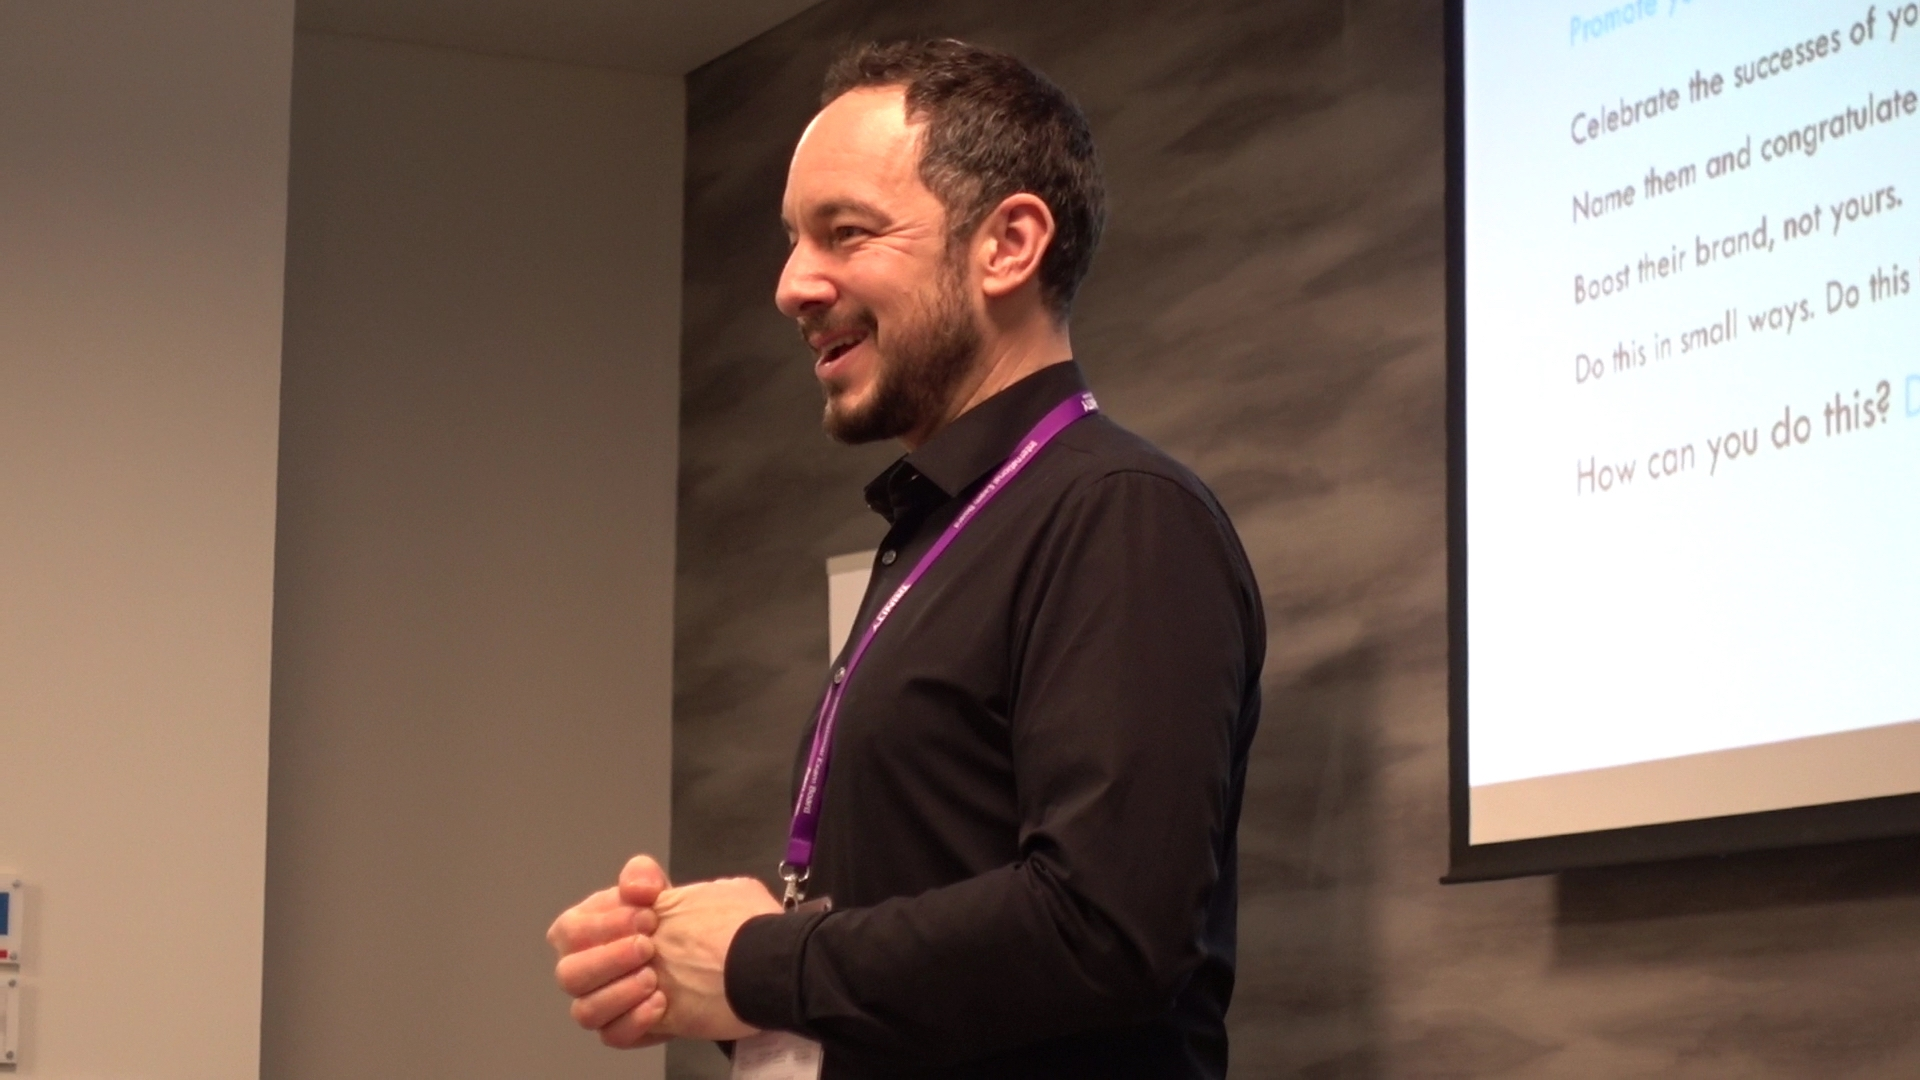 Richard Bradford of Disquiet Dog Marketing consultancy smiling as he looks at the audience out of view.